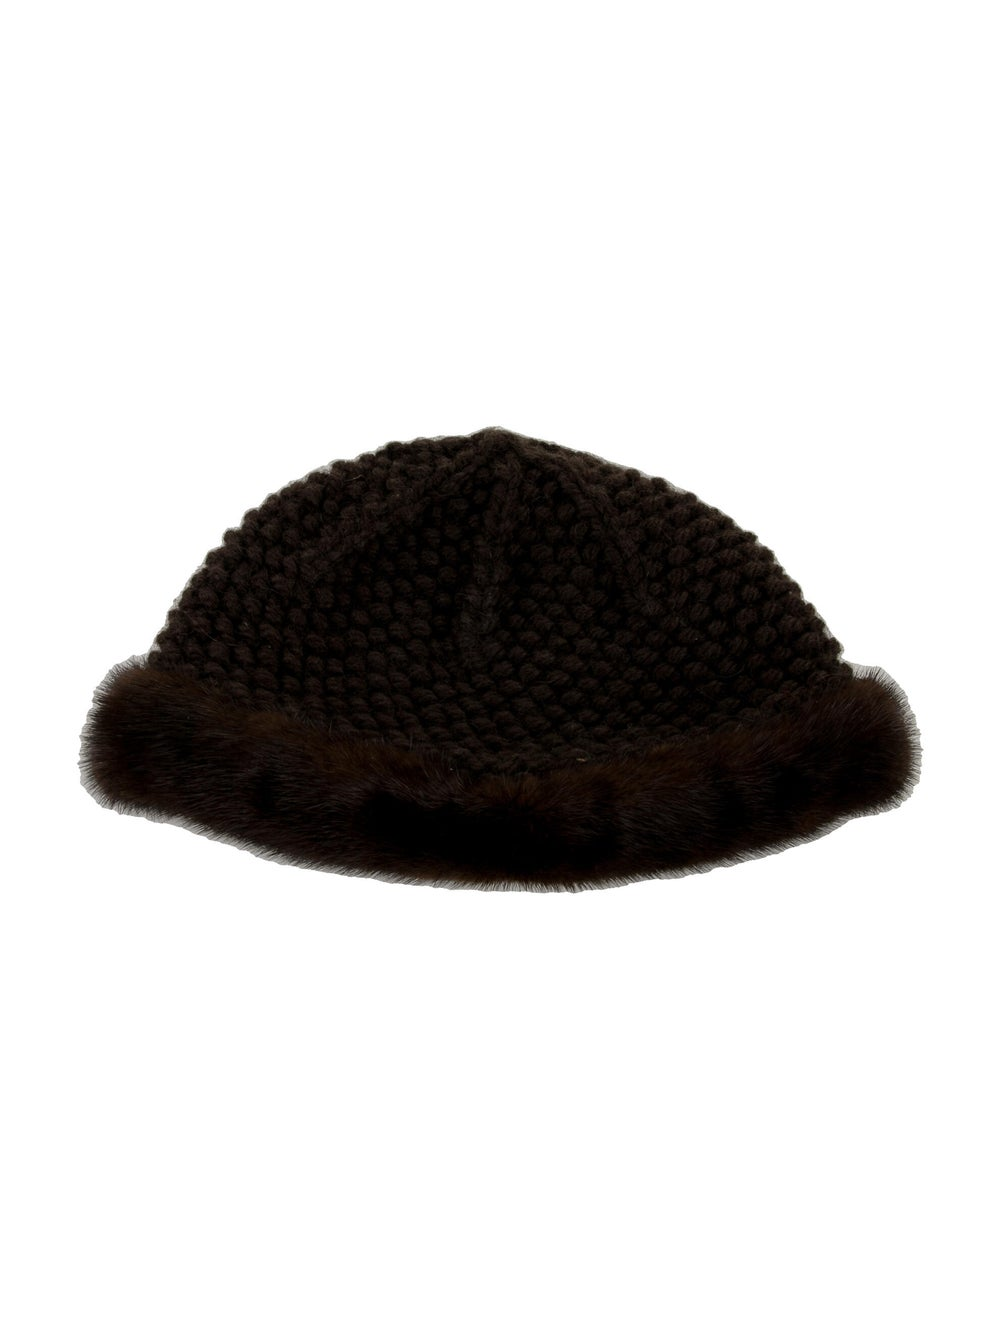 Patricia Underwood Knitted Mink Hat Brown - image 2